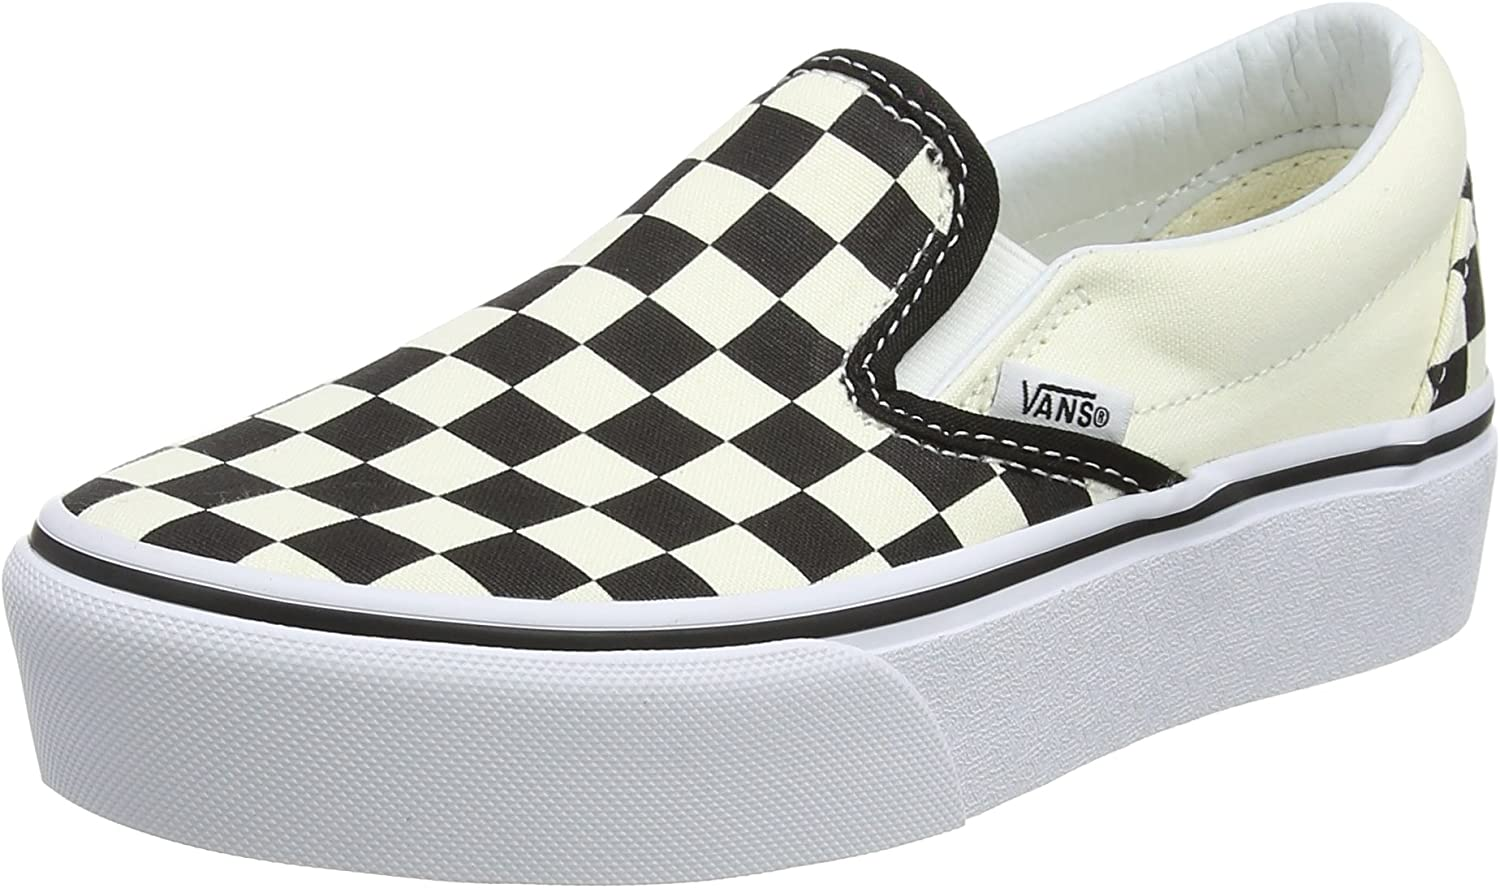 Vans Women's Low-top Slip On Trainers